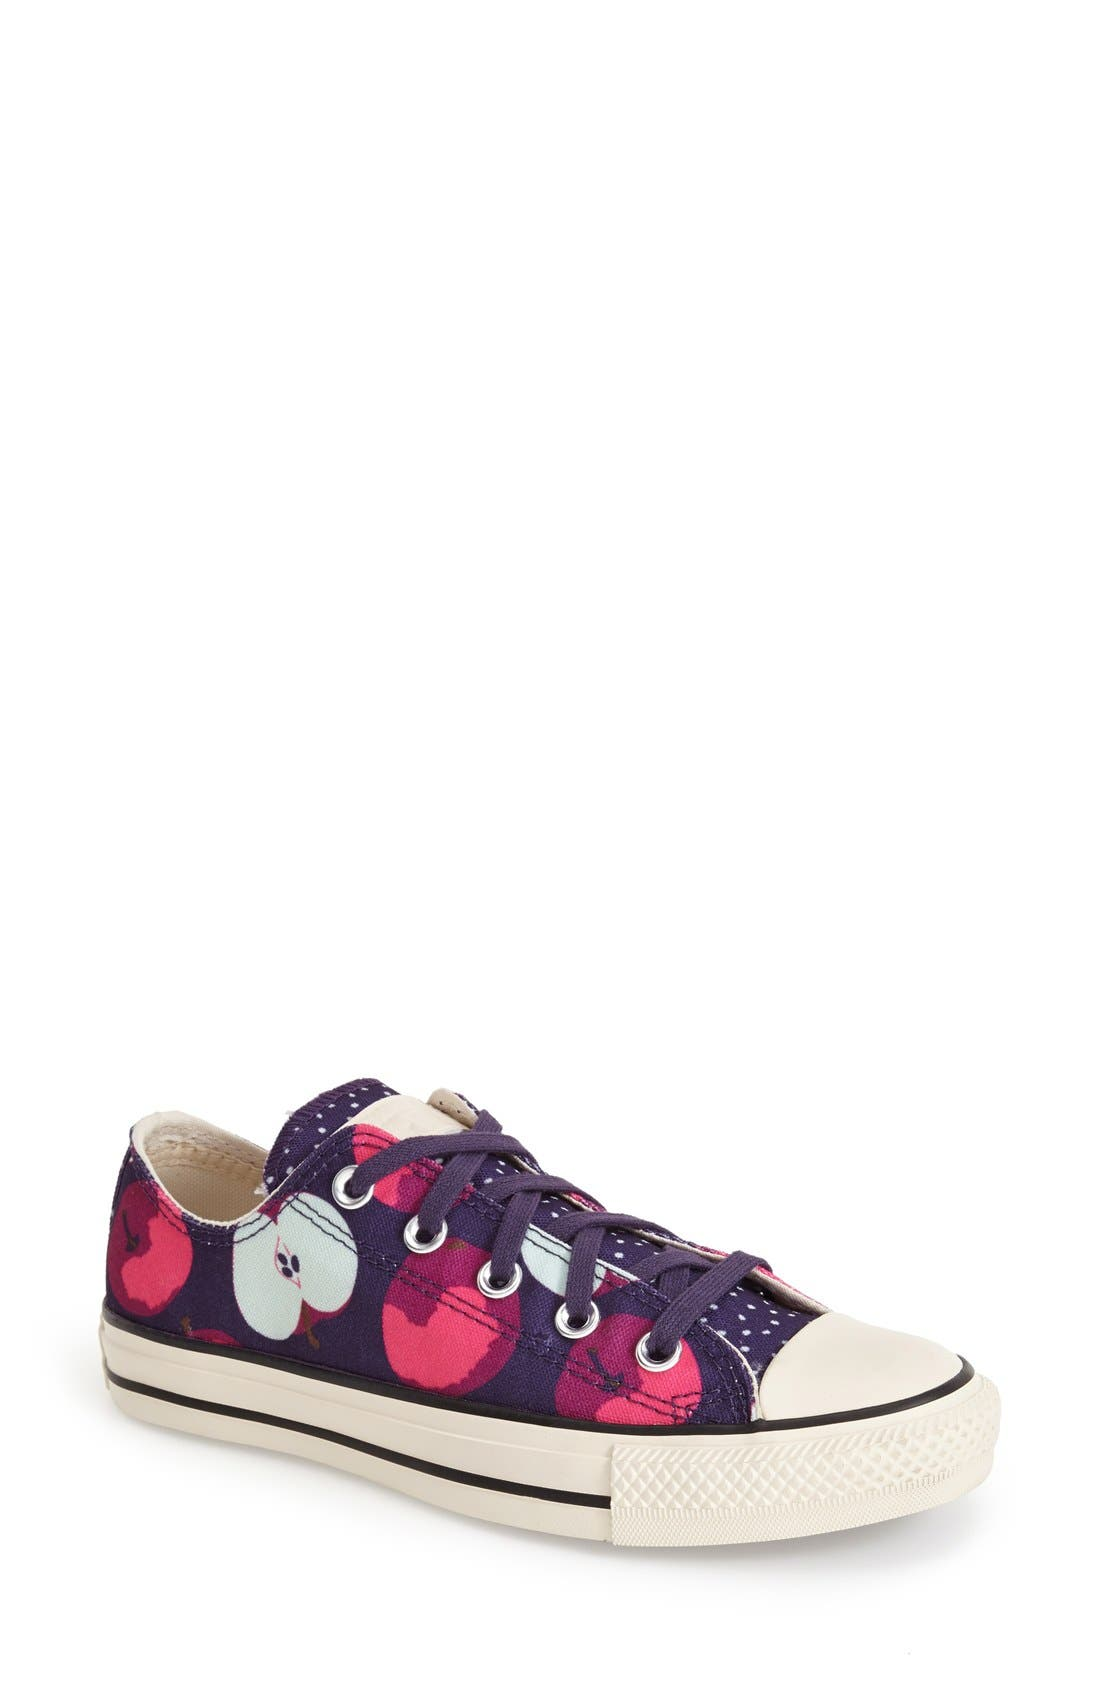 Main Image - Converse Chuck Taylor® All Star® Apple Print Sneaker (Women)